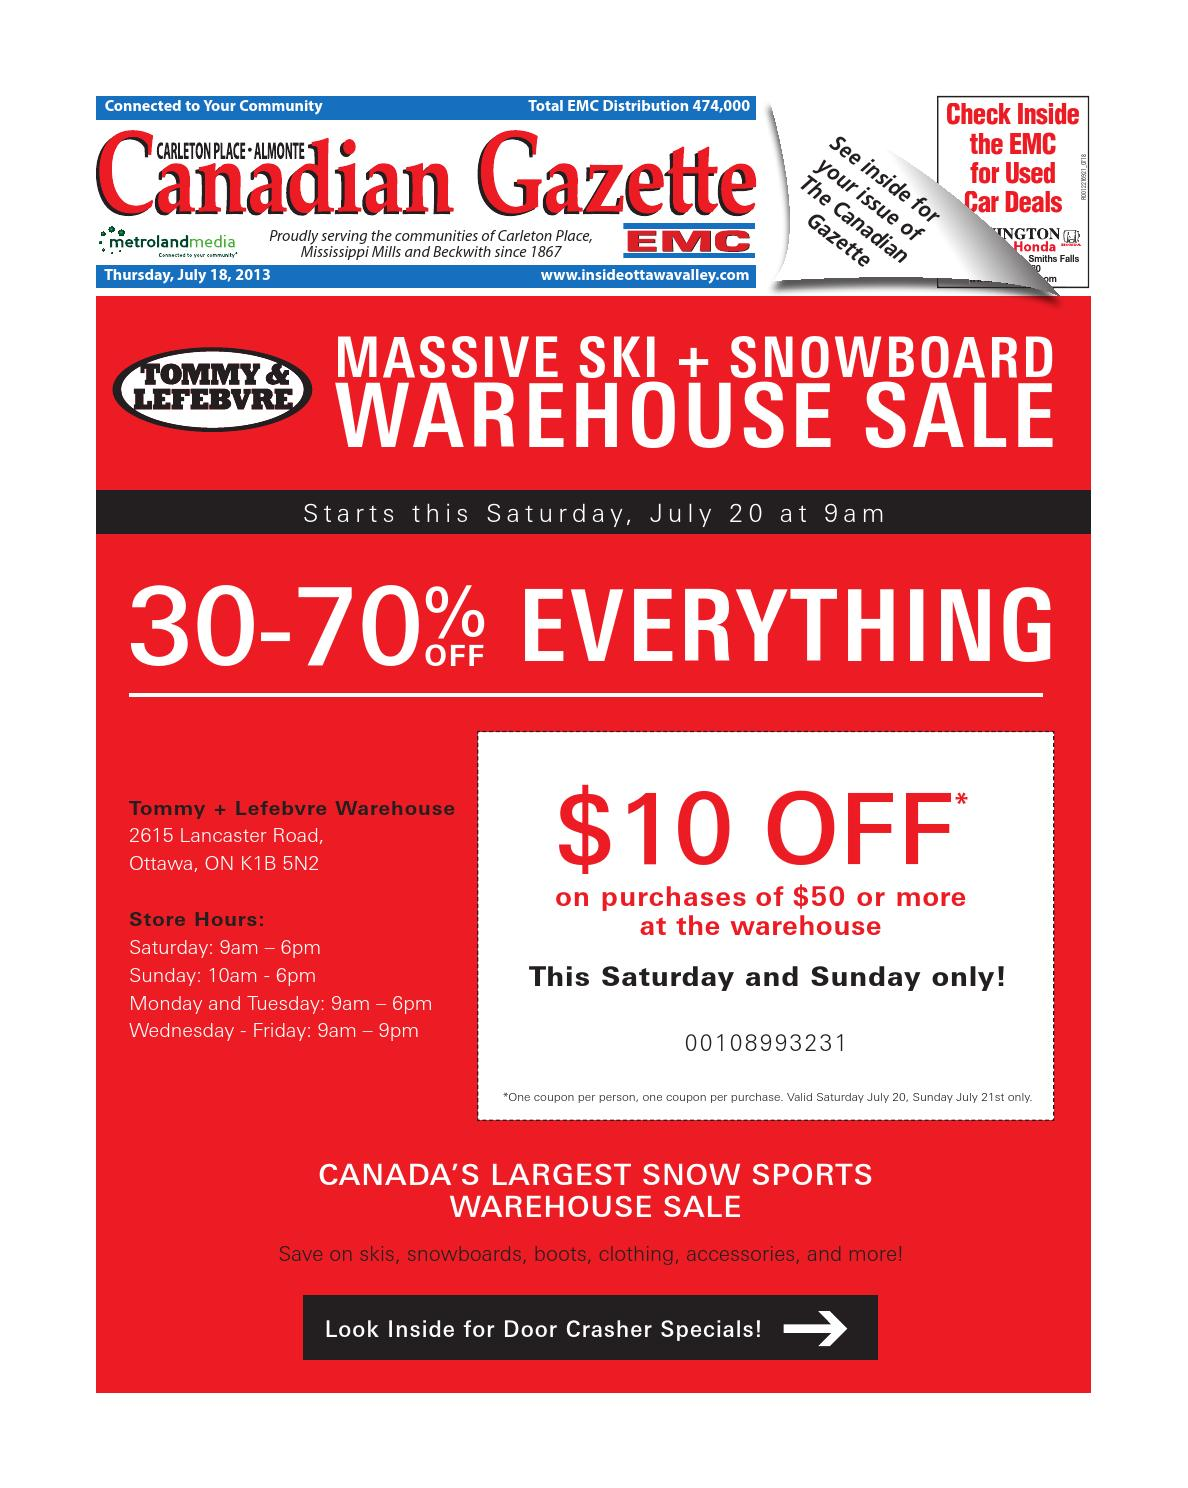 9cfad7d4c33 Almontecarletonplace071813 by Metroland East - Almonte Carleton Place  Canadian Gazette - issuu